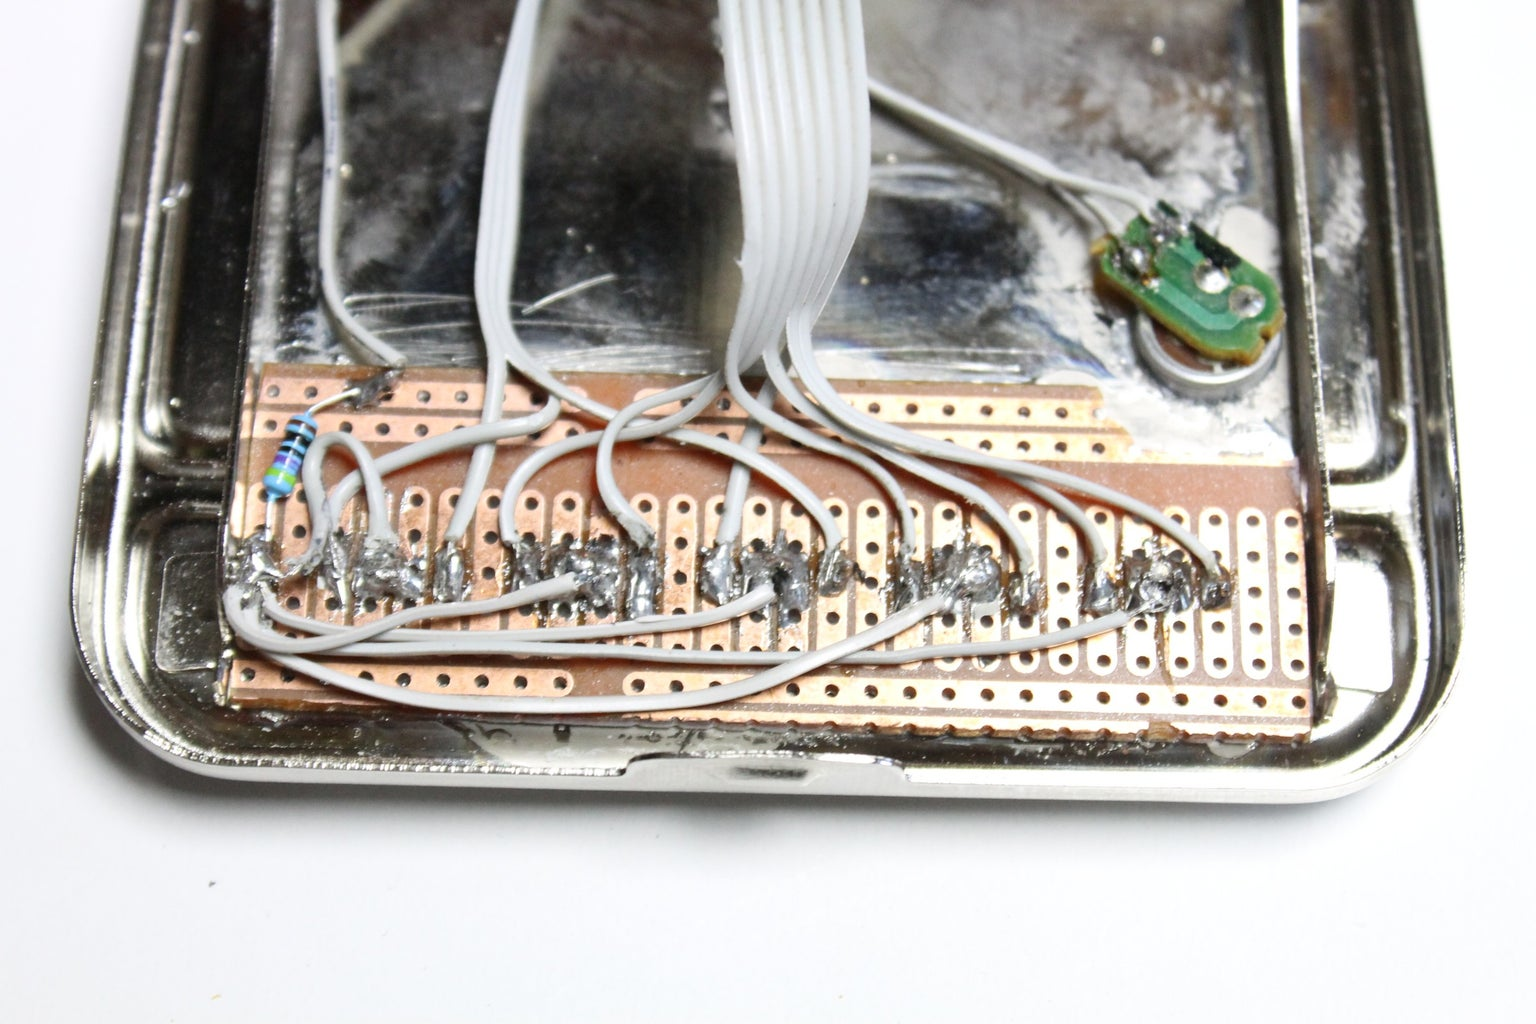 Wiring the LED's to the IC